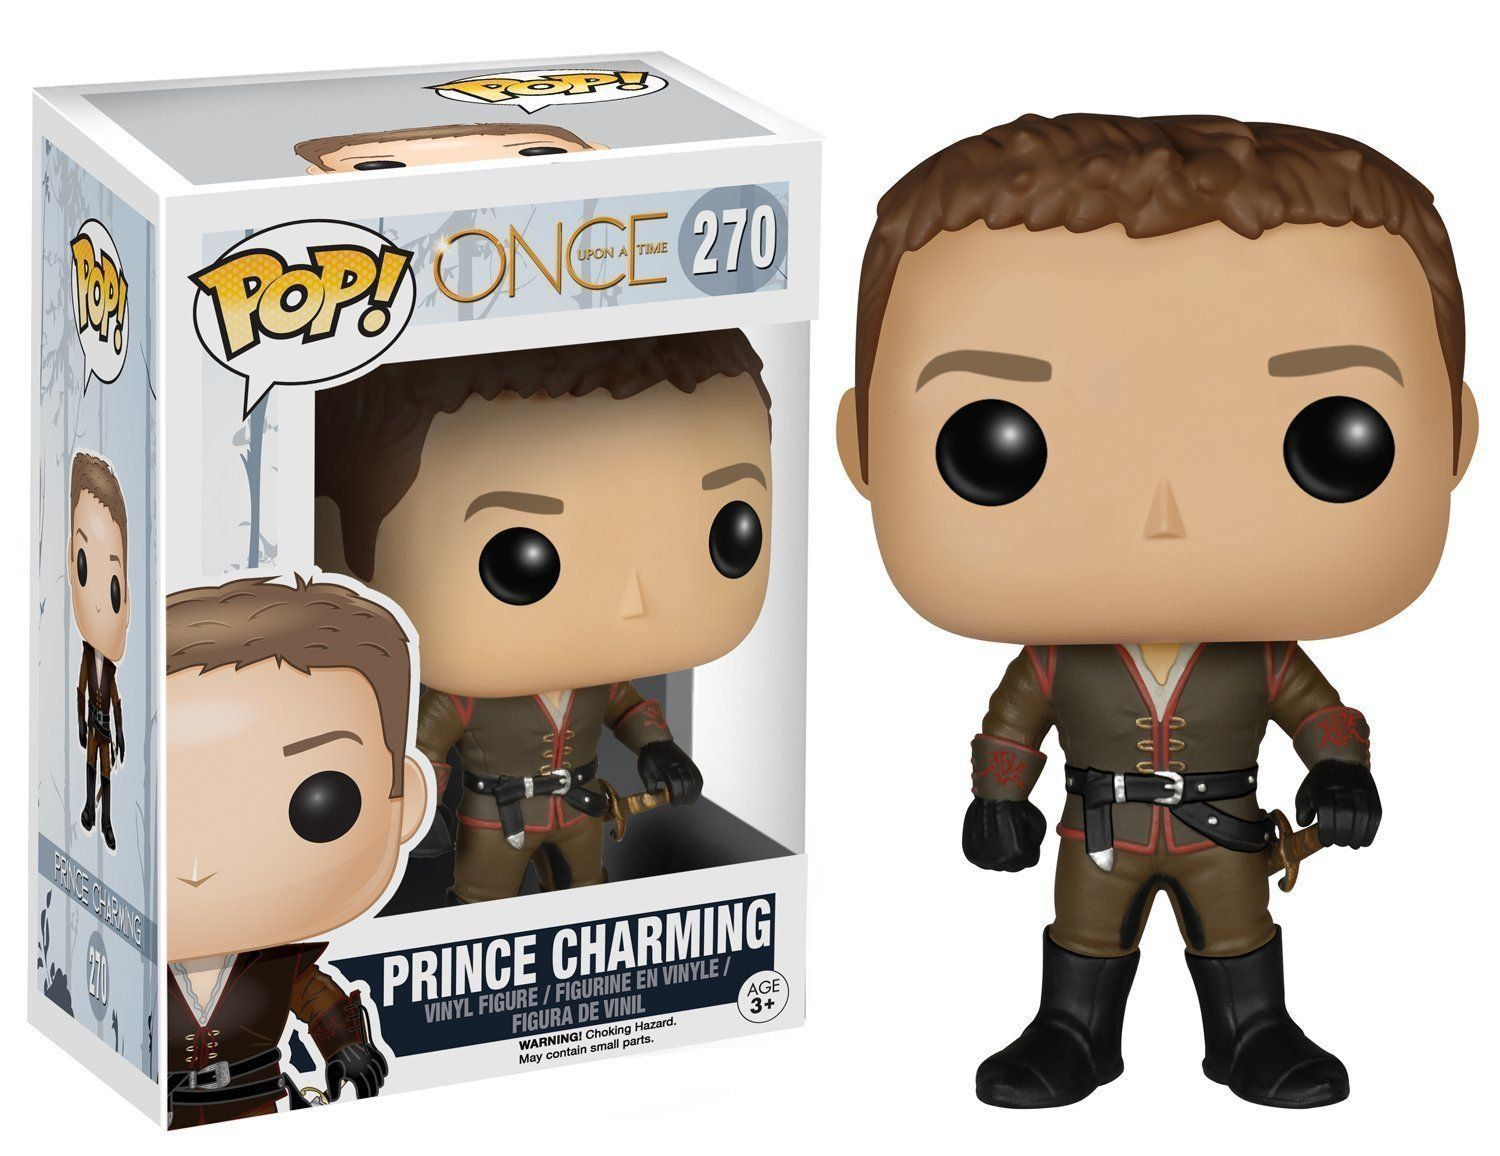 Funko Pop! Prince Charming: Once Upon a Time #270 - Funko